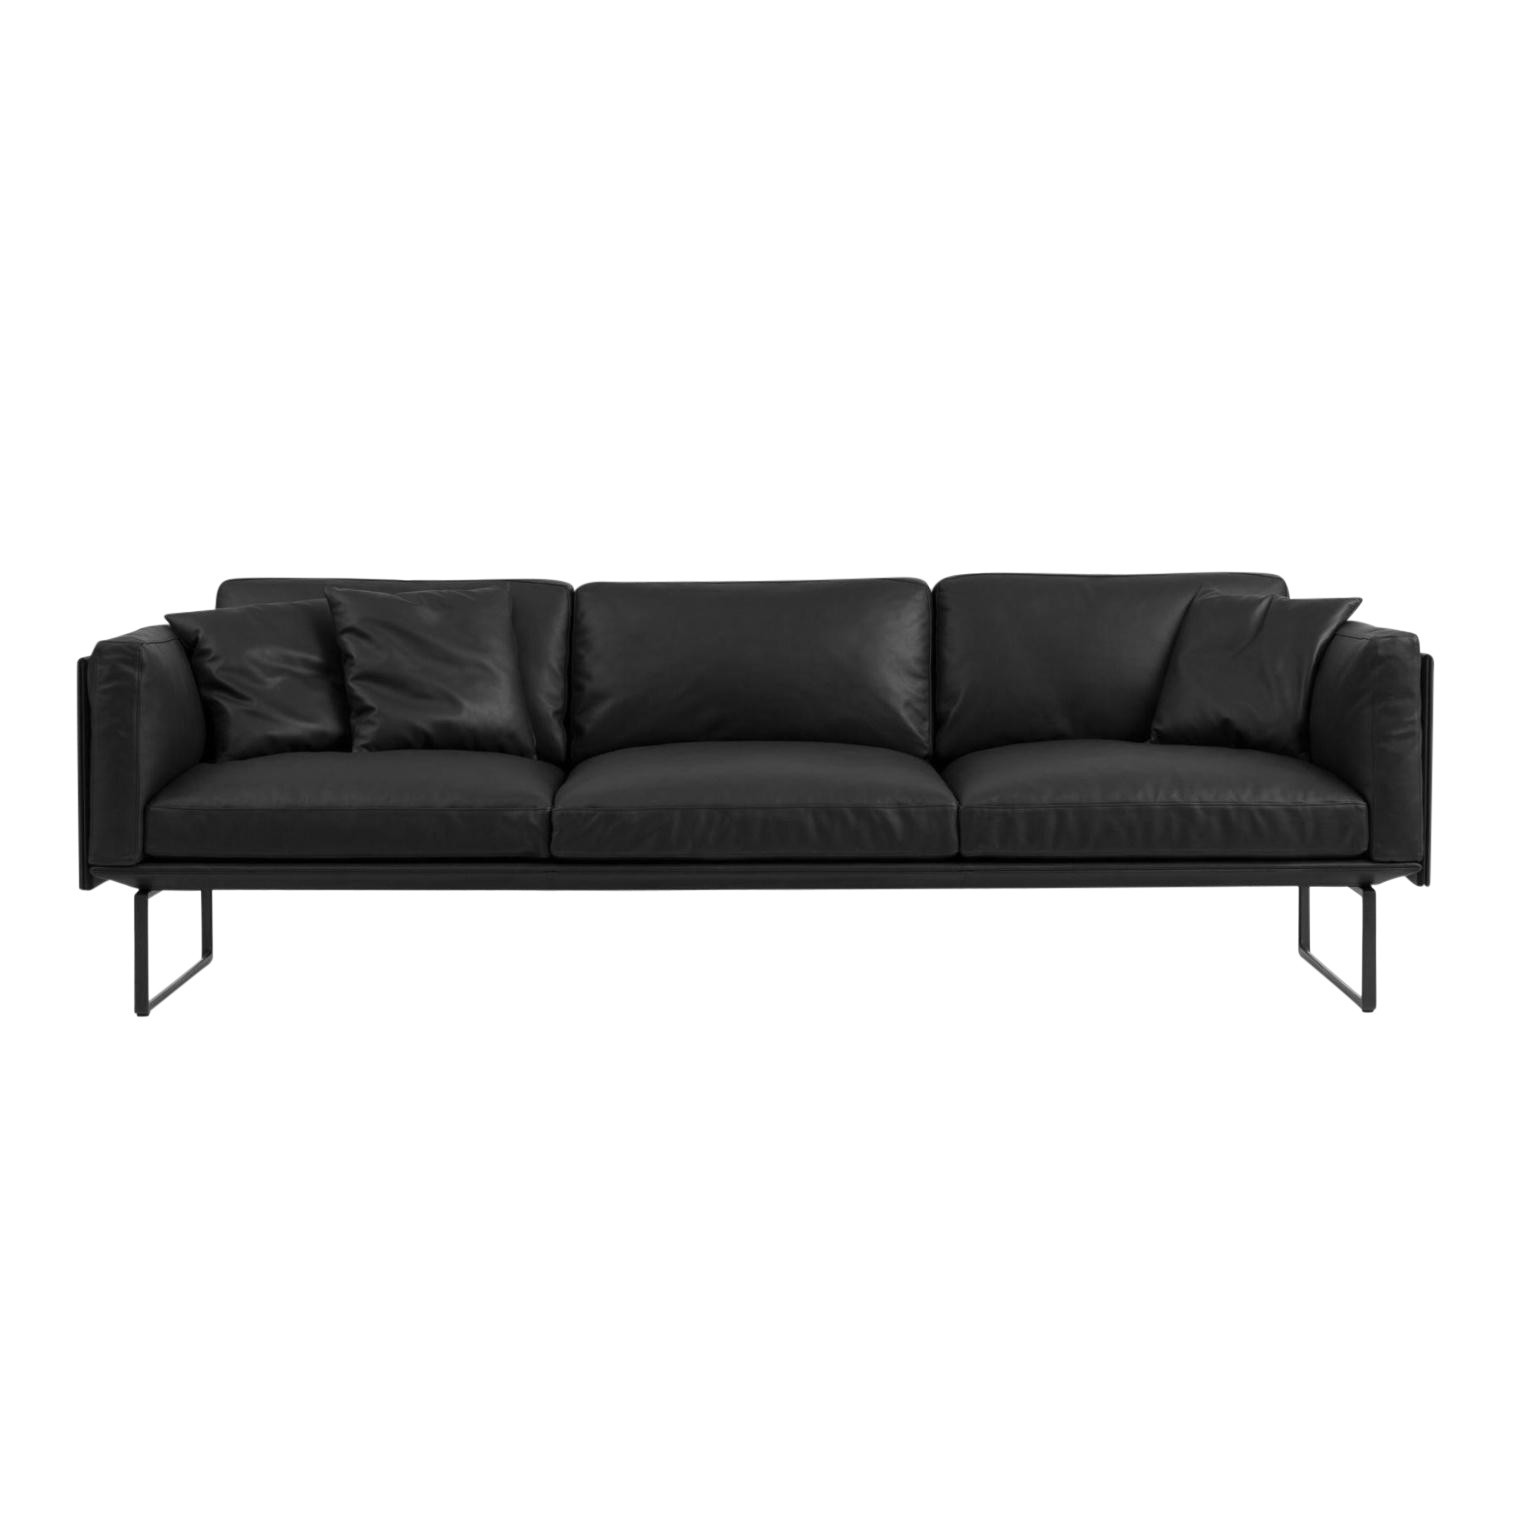 Cina 8 Piero Lissoni 3 Seater Sofa 251x88cm Black Frame Matt